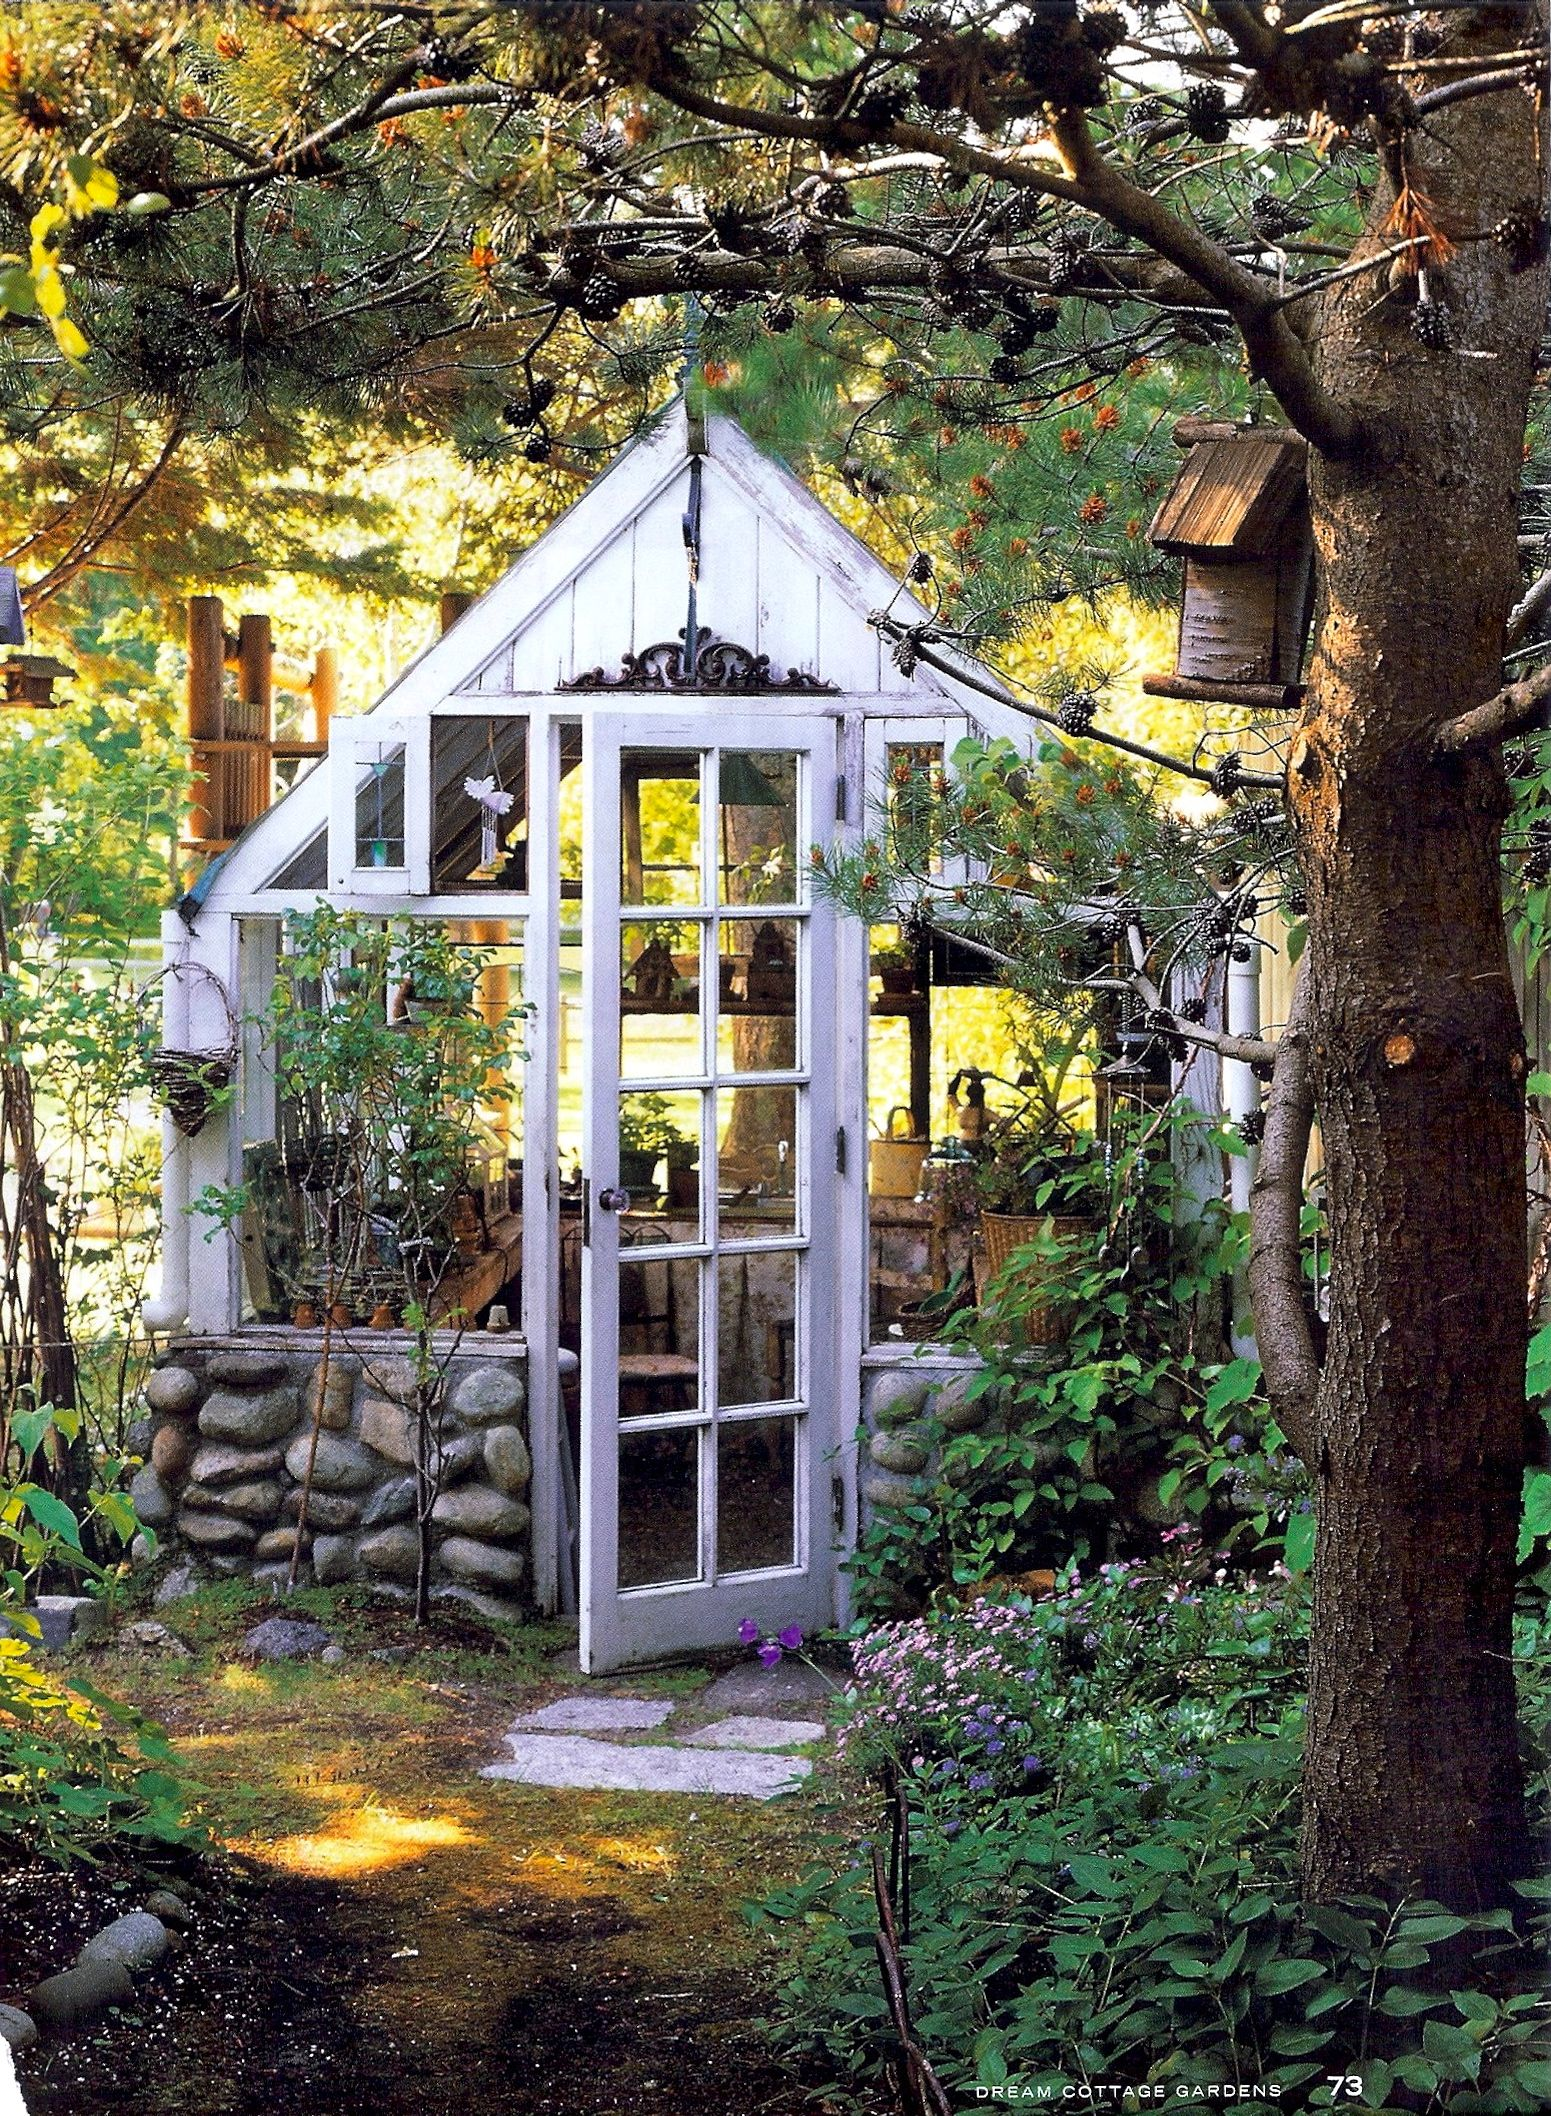 potting sheds and greenhouses greenhouse treasures pinterest garten garten ideen und. Black Bedroom Furniture Sets. Home Design Ideas